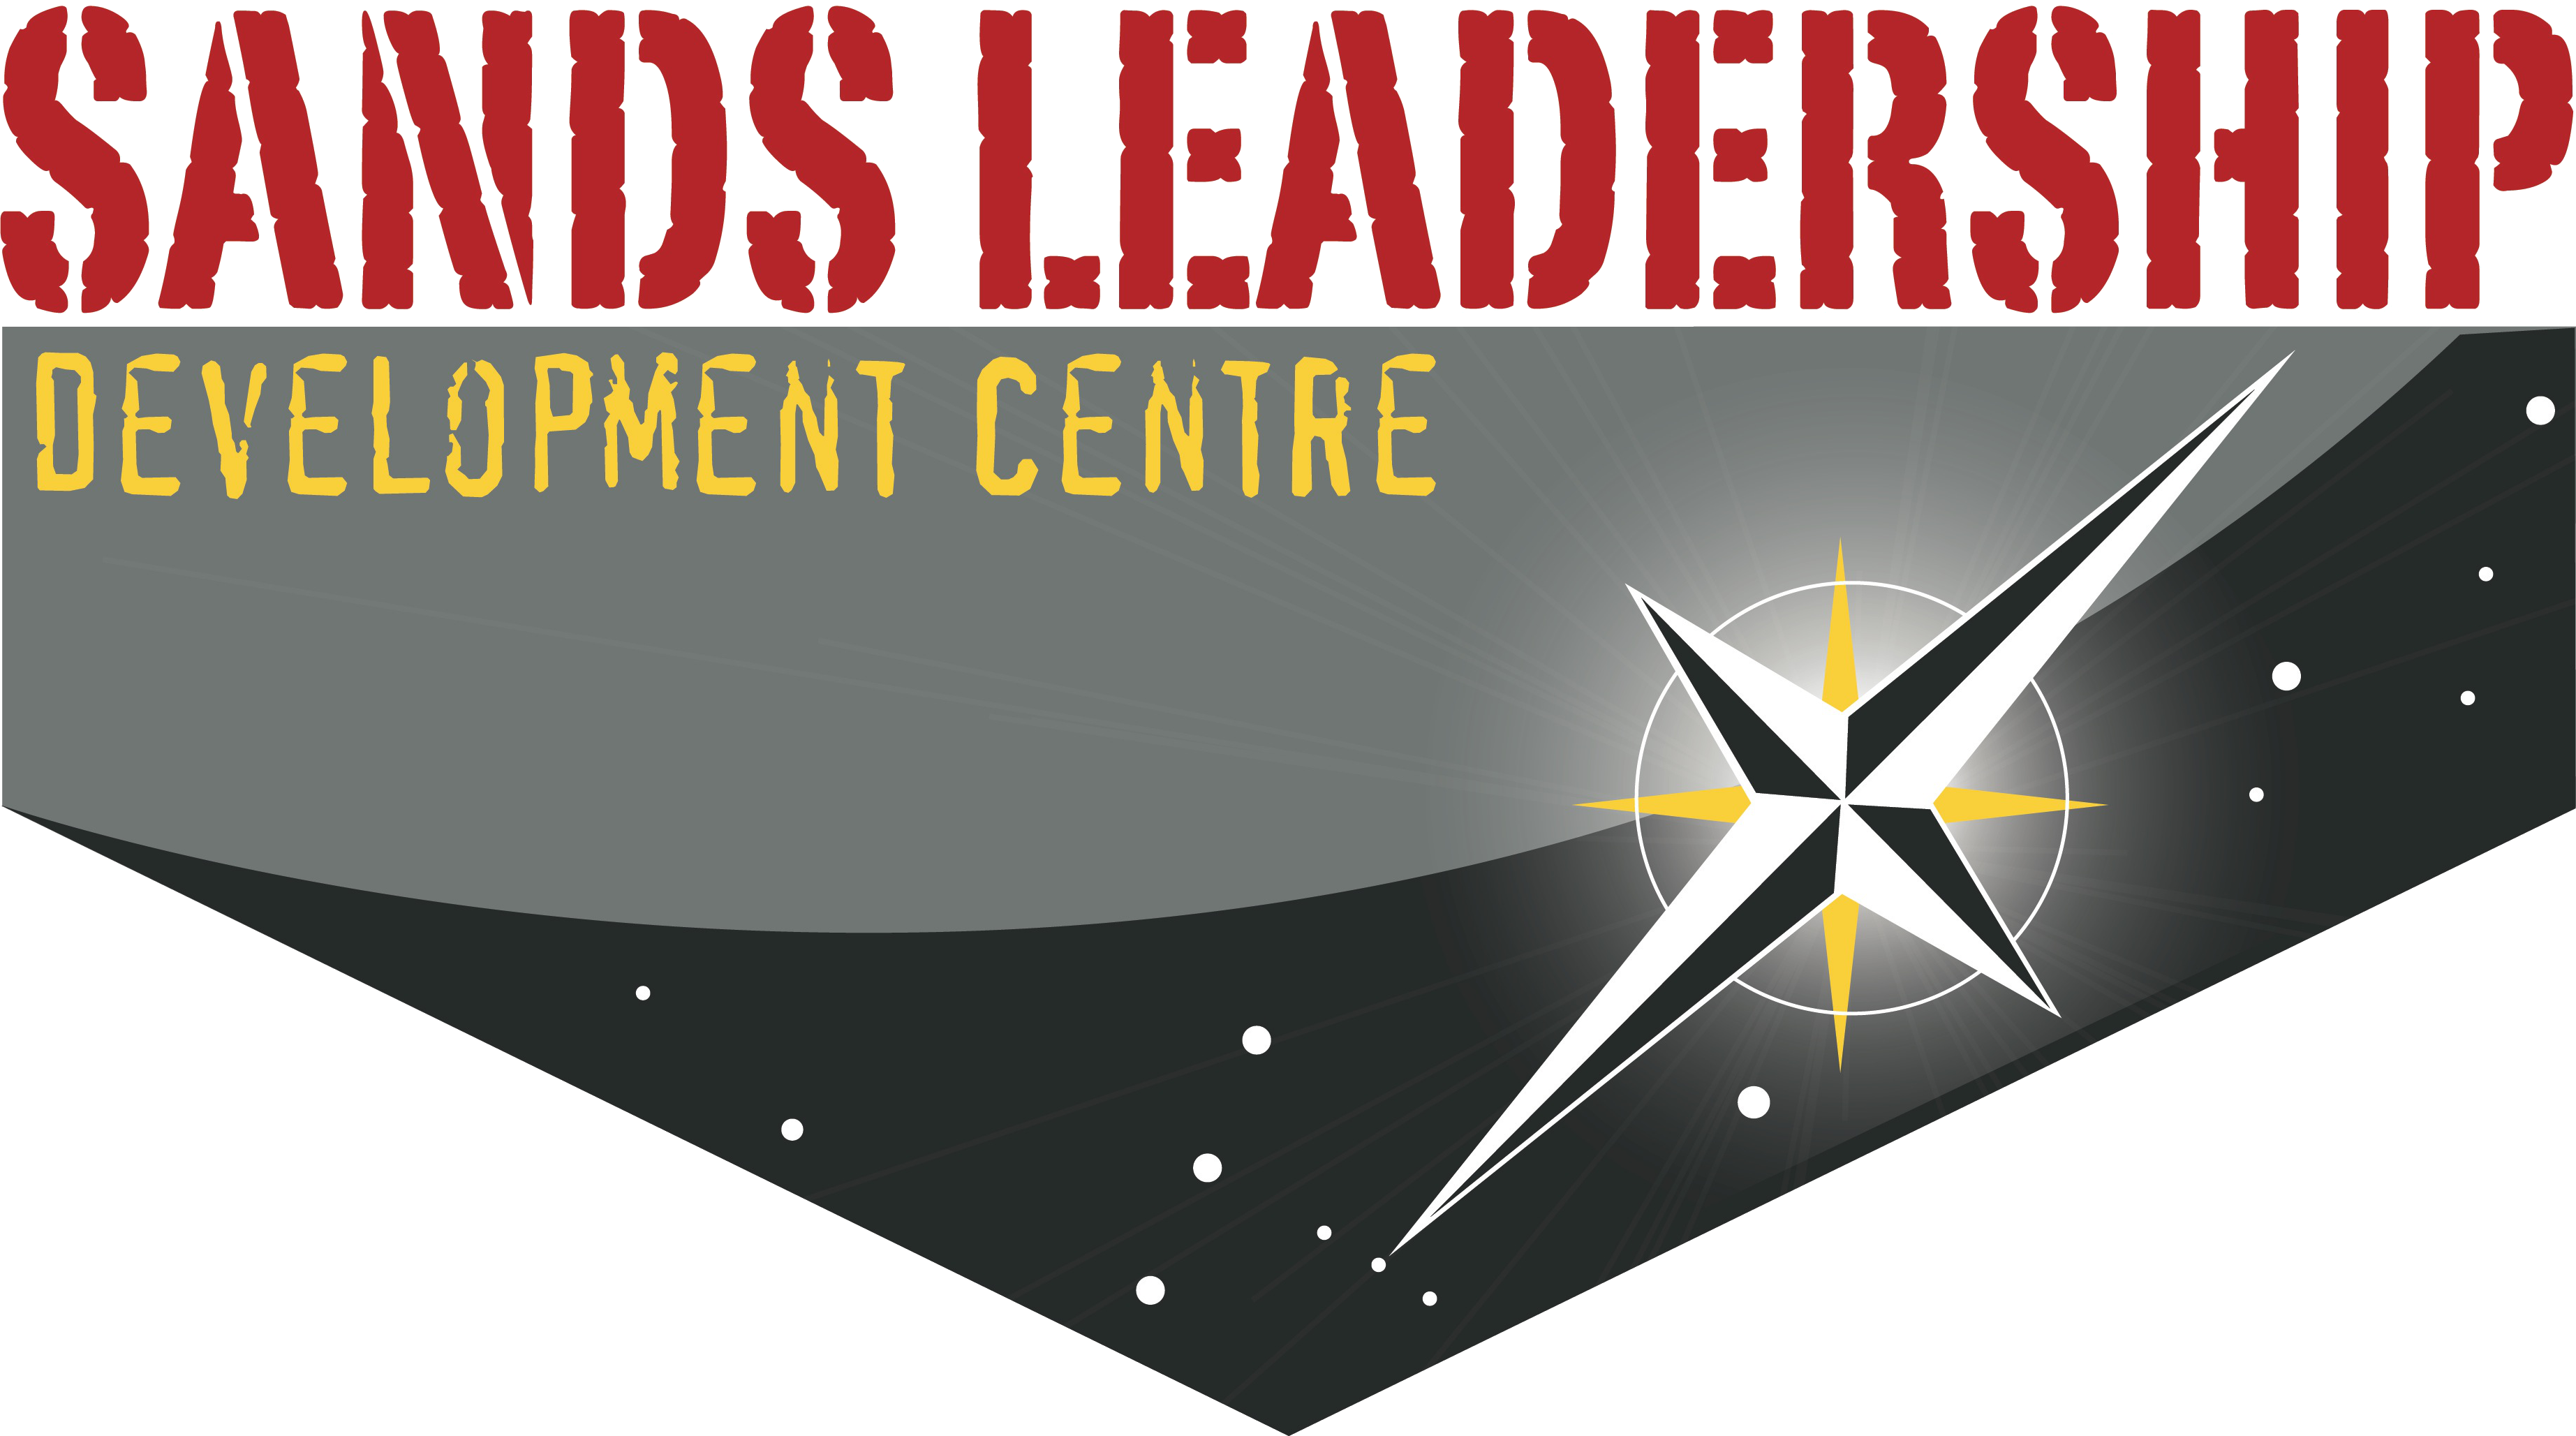 Sands Leadership Development Centre